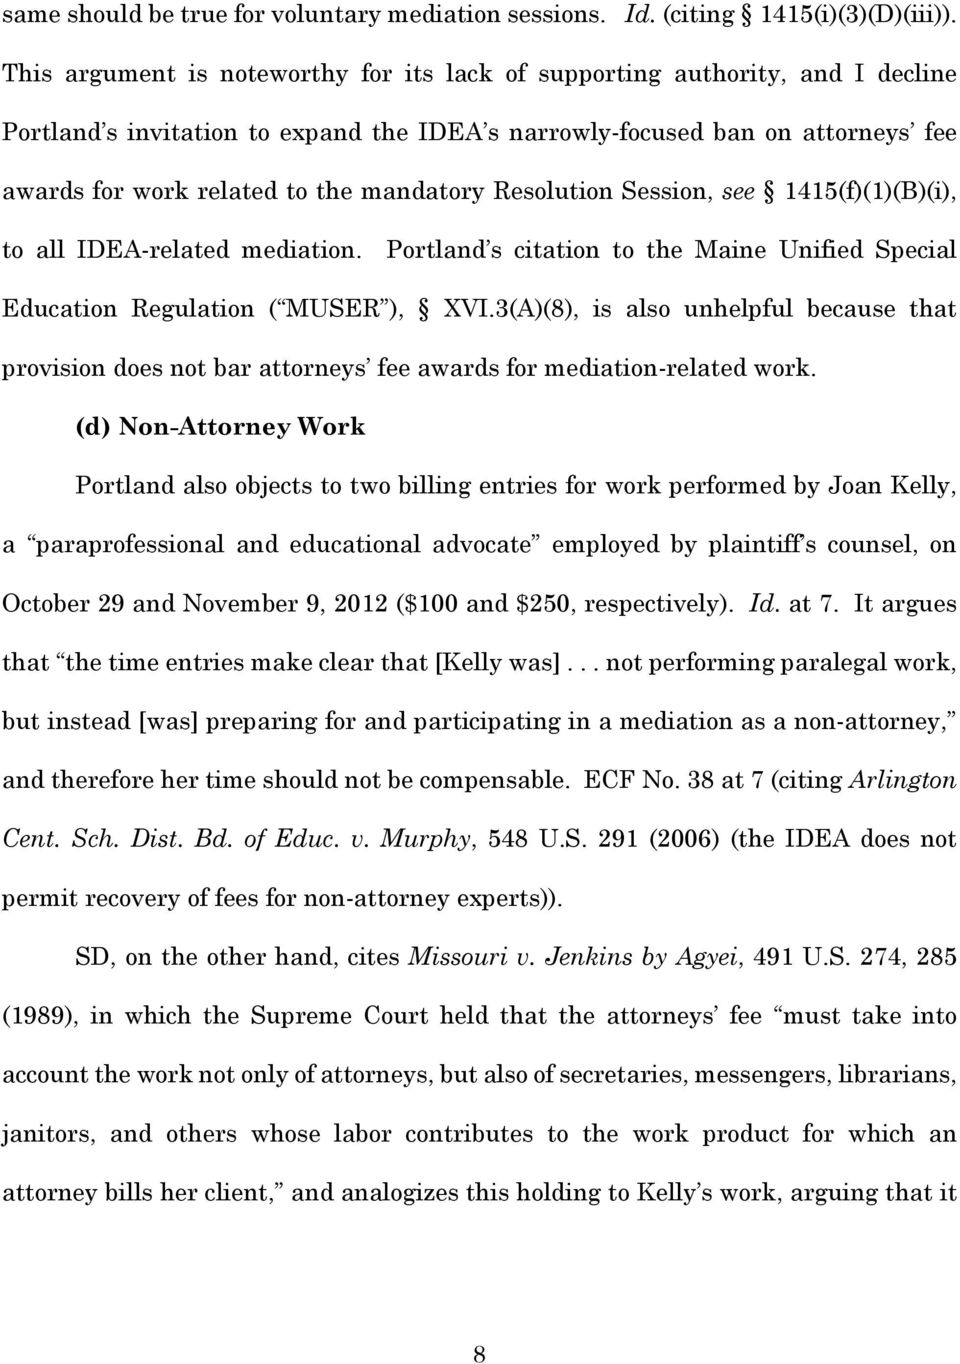 mandatory Resolution Session, see 1415(f)(1)(B)(i), to all IDEA-related mediation. Portland s citation to the Maine Unified Special Education Regulation ( MUSER ), XVI.